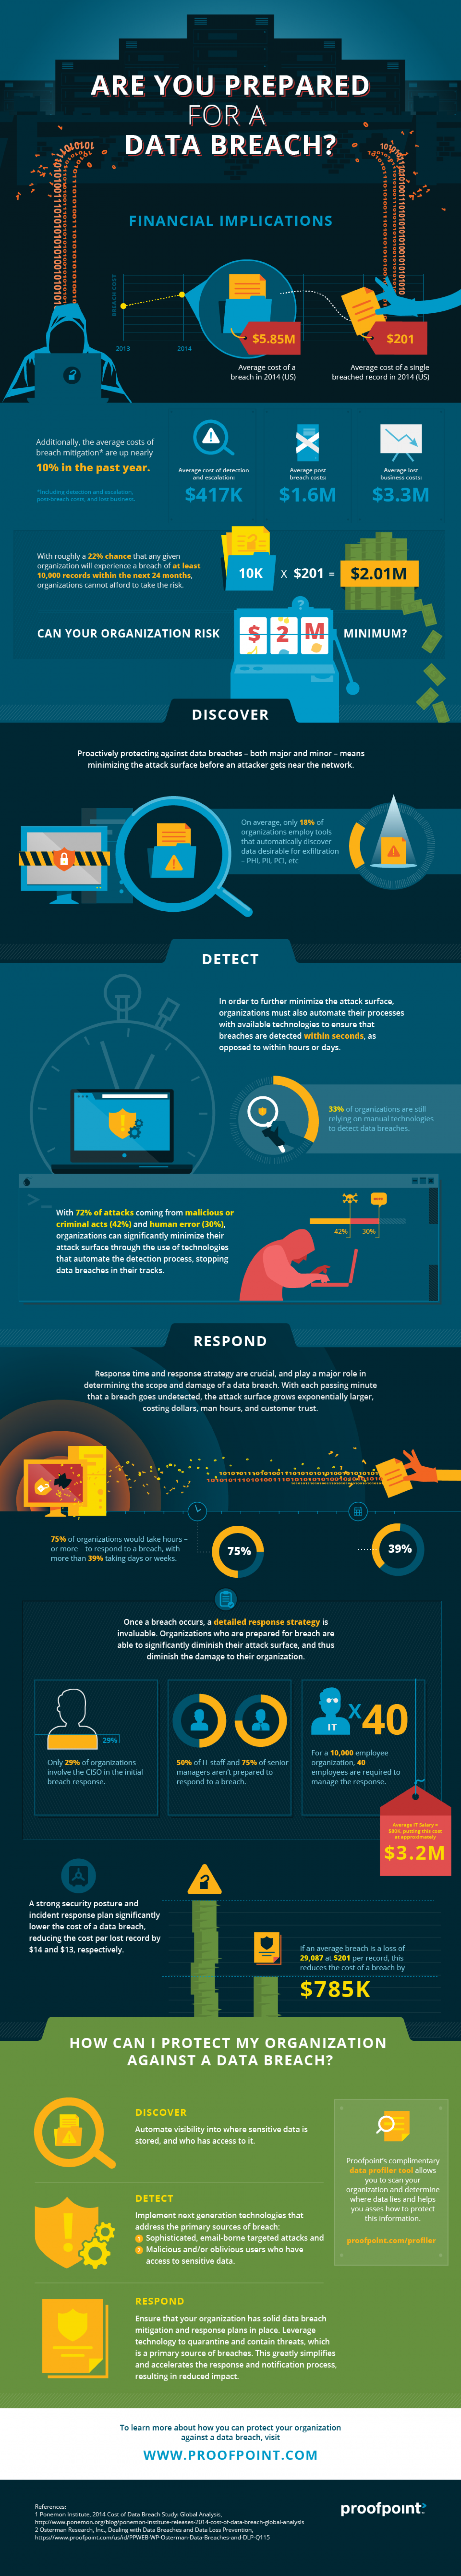 Are you ready for a data breach? Infographic